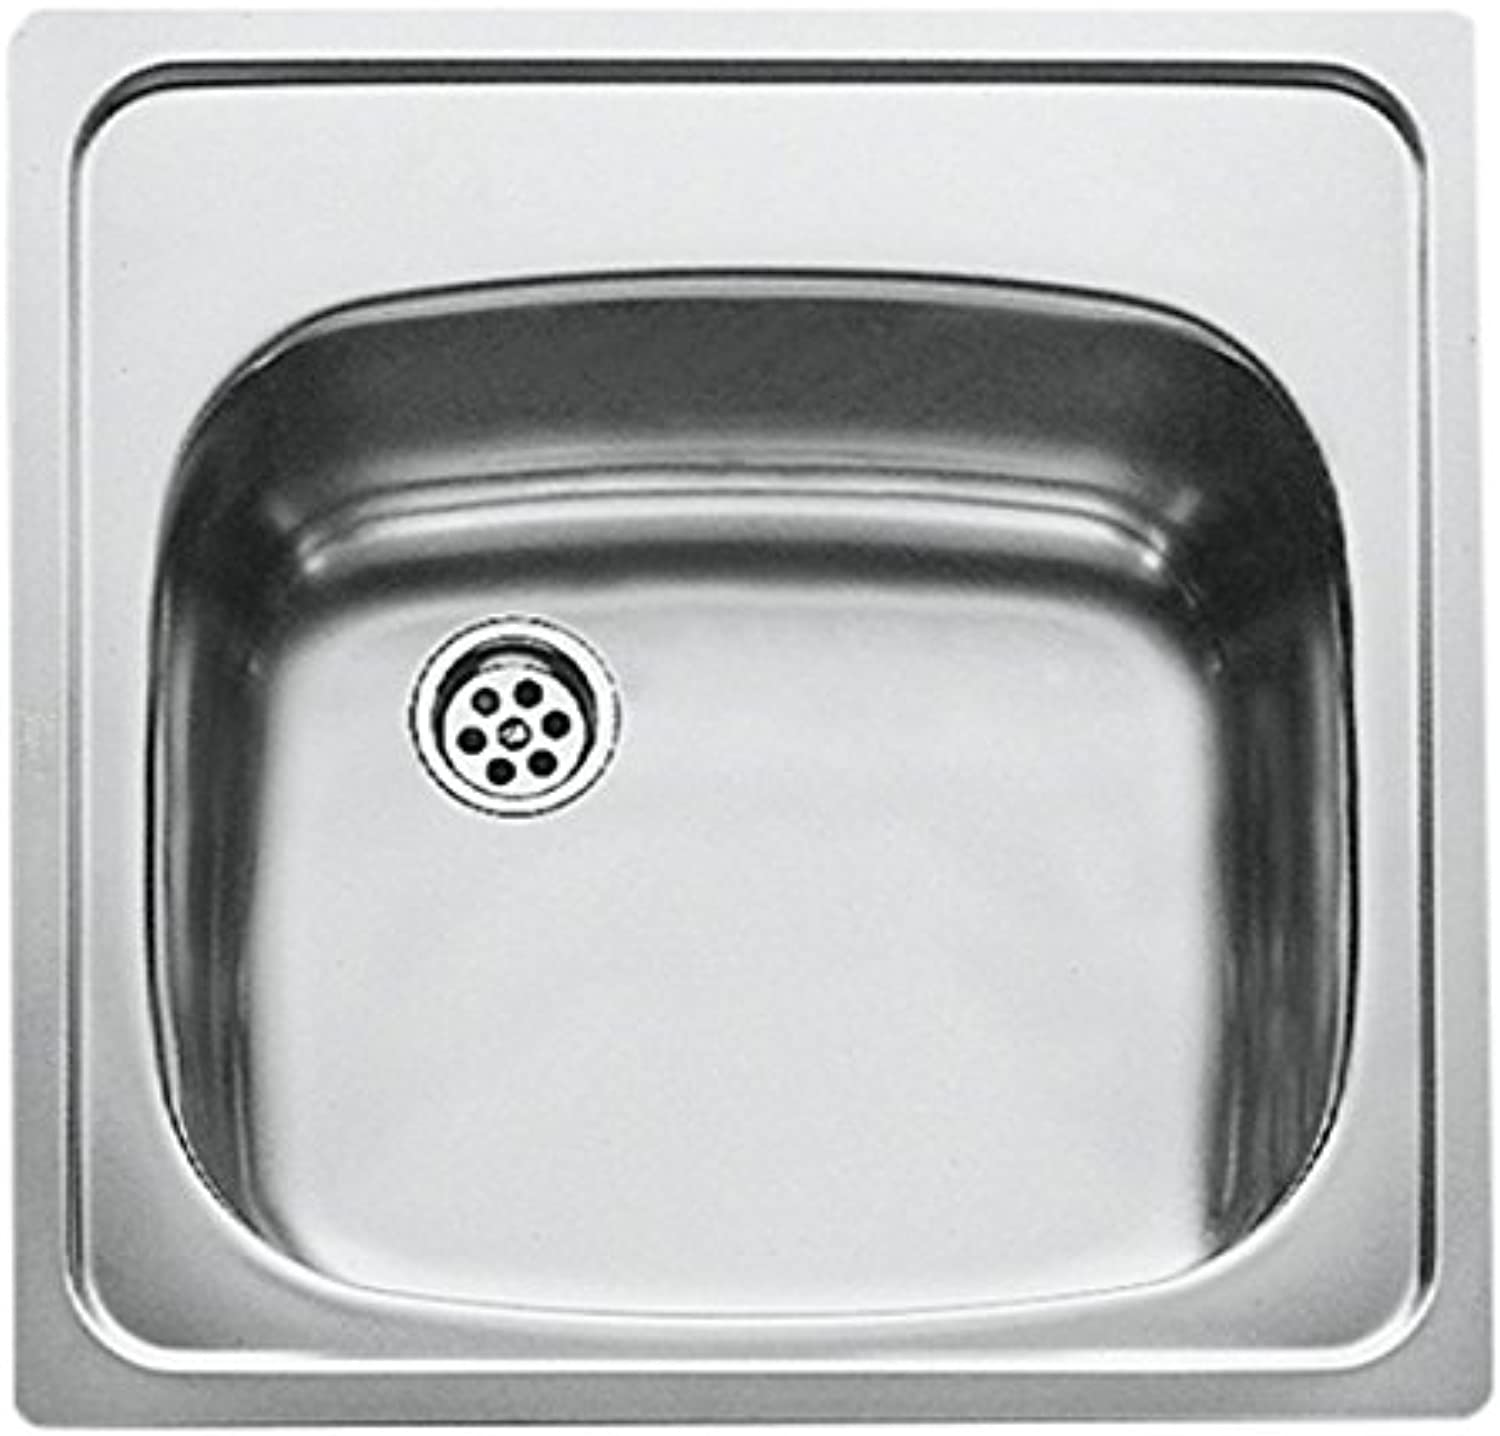 Teka Kitchen Sink with a Single Bowl Made of Stainless Steel 18 10 Thickness 0.6 mm E 50 1C 465 x 465 CN MAT 30000048, Grey